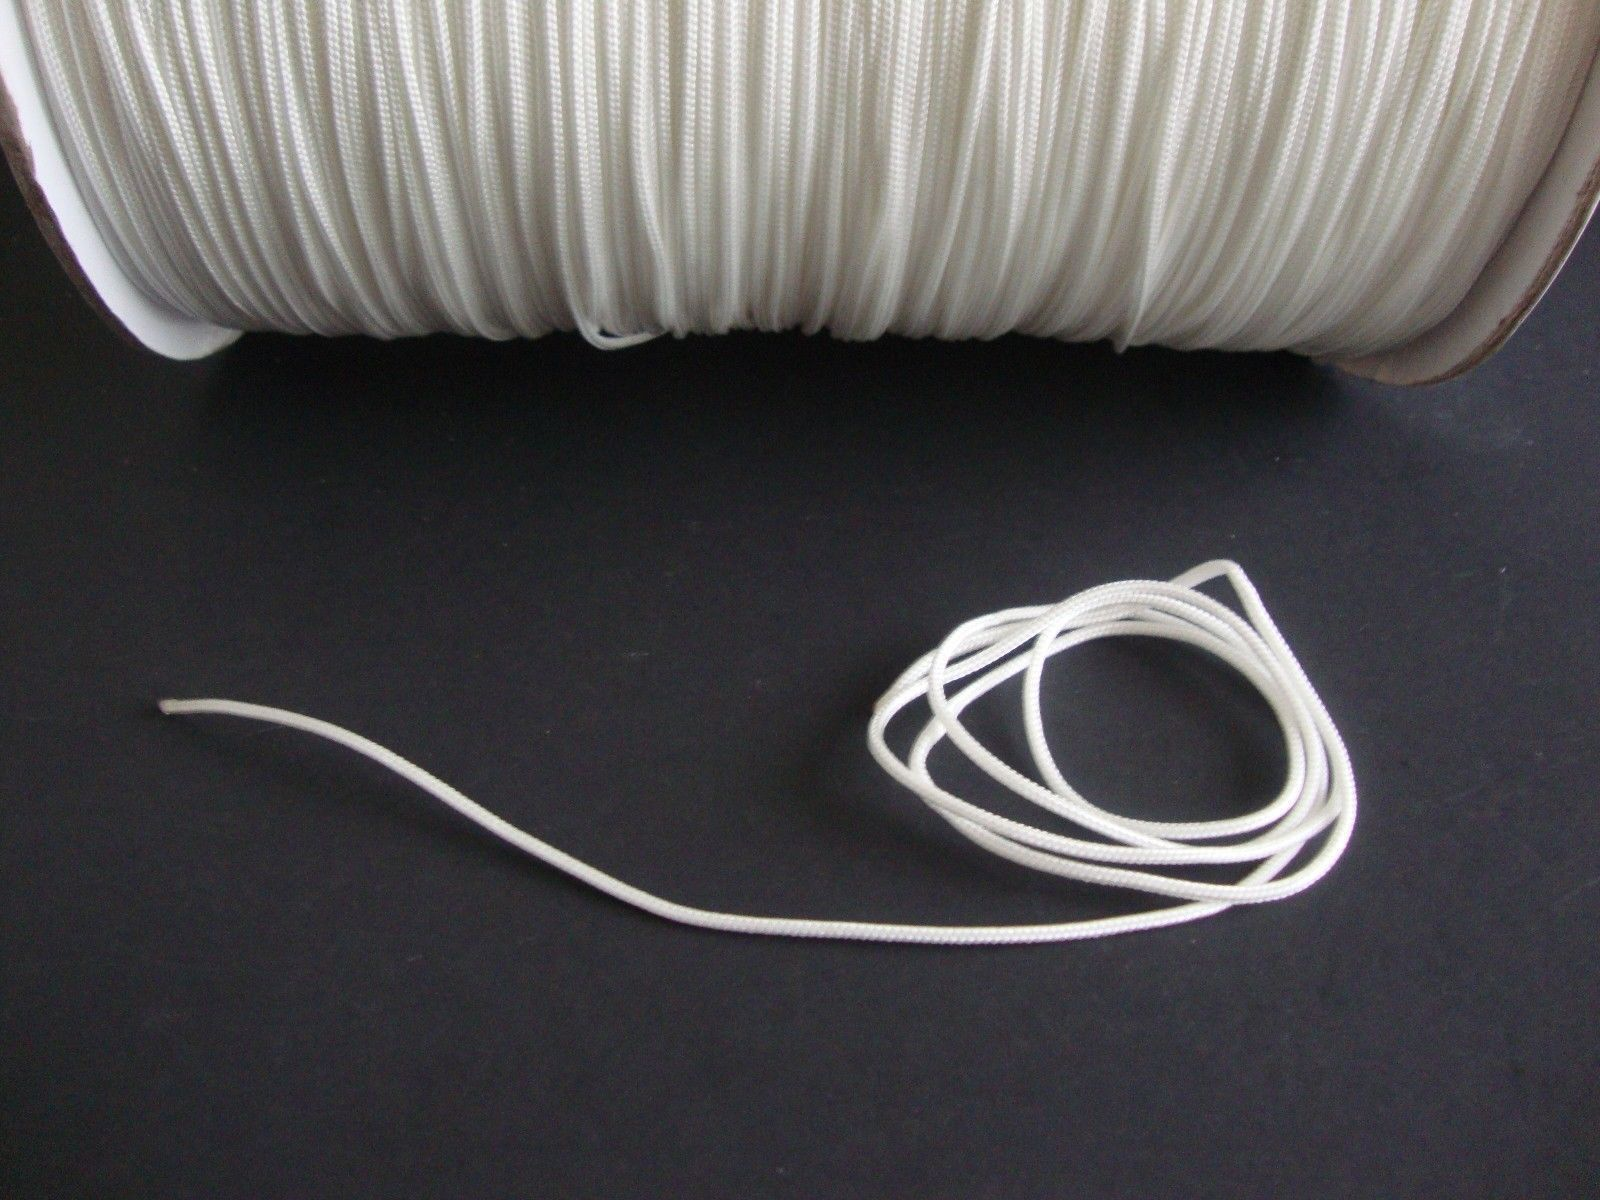 50 FEET:1.8mm WHITE LIFT CORD for Blinds, Roman Shades and More